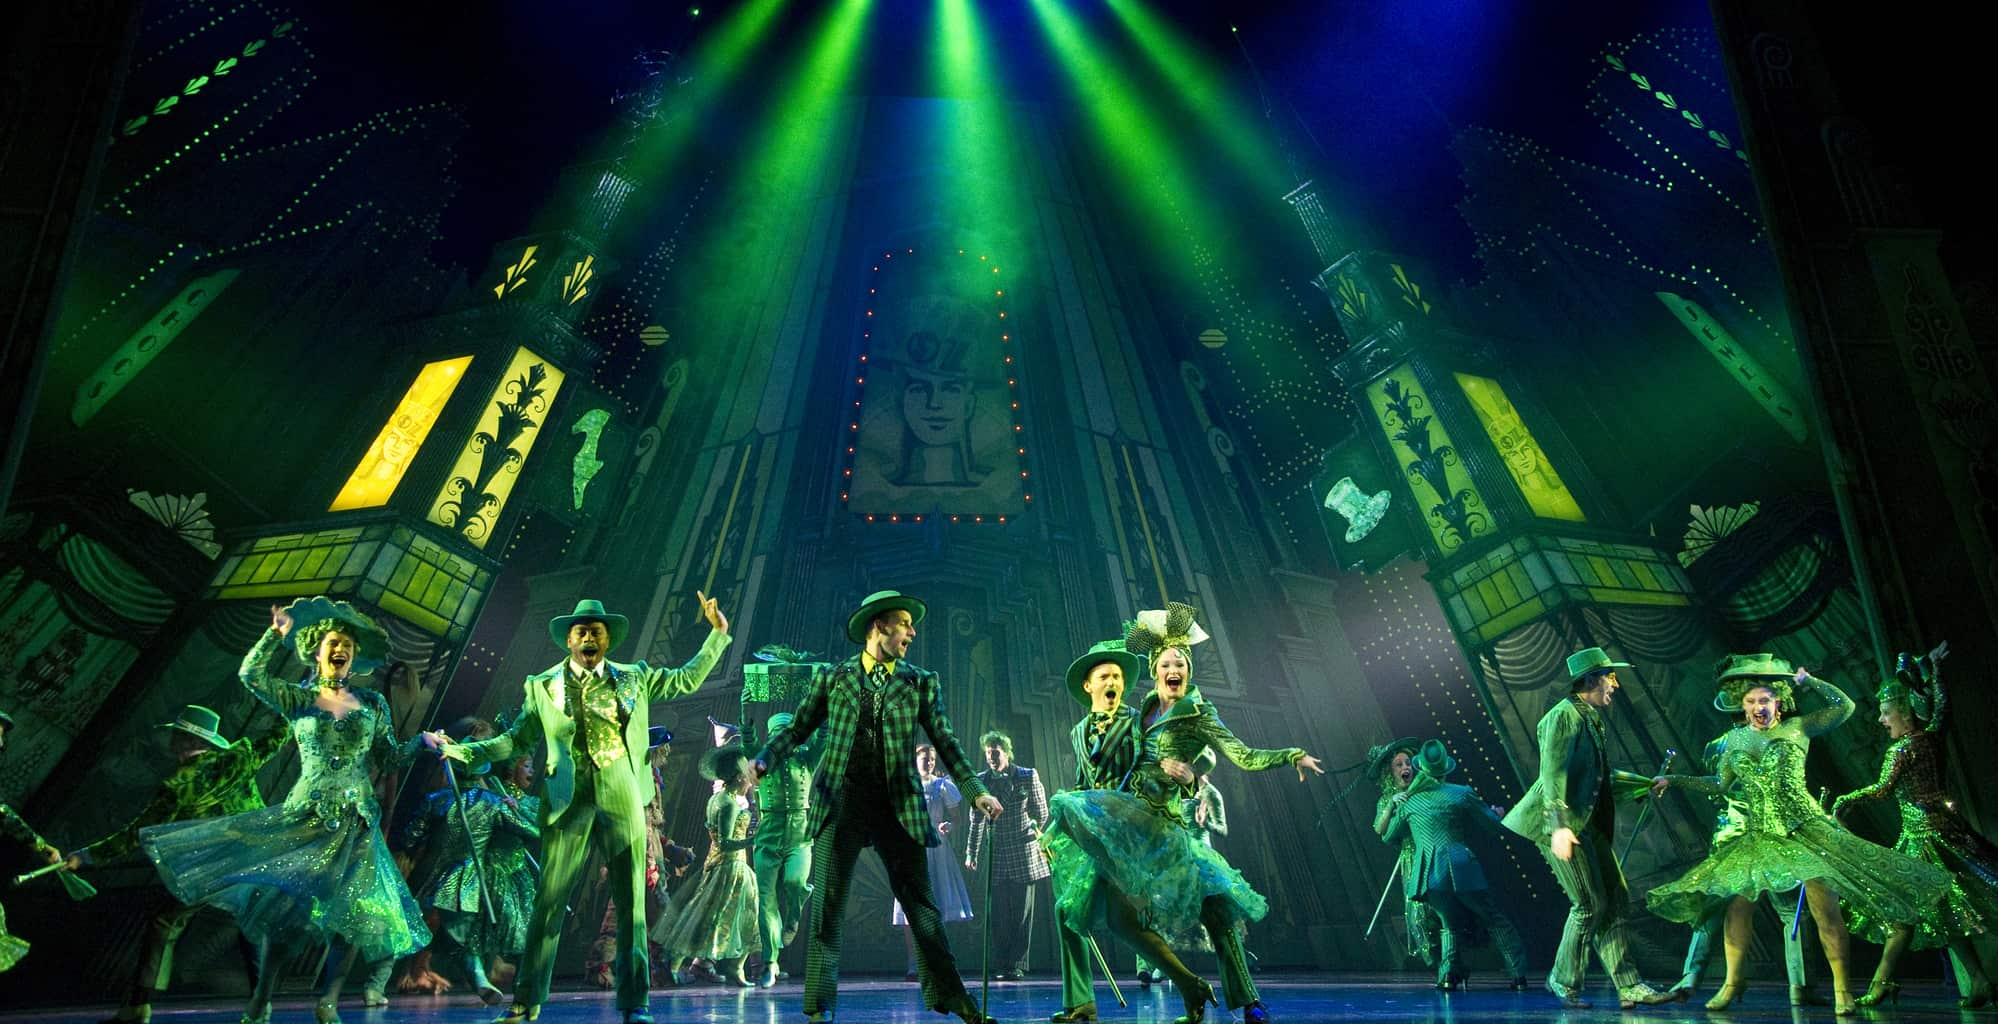 Review of Wizard of Oz at The Ordway in St. Paul, MN